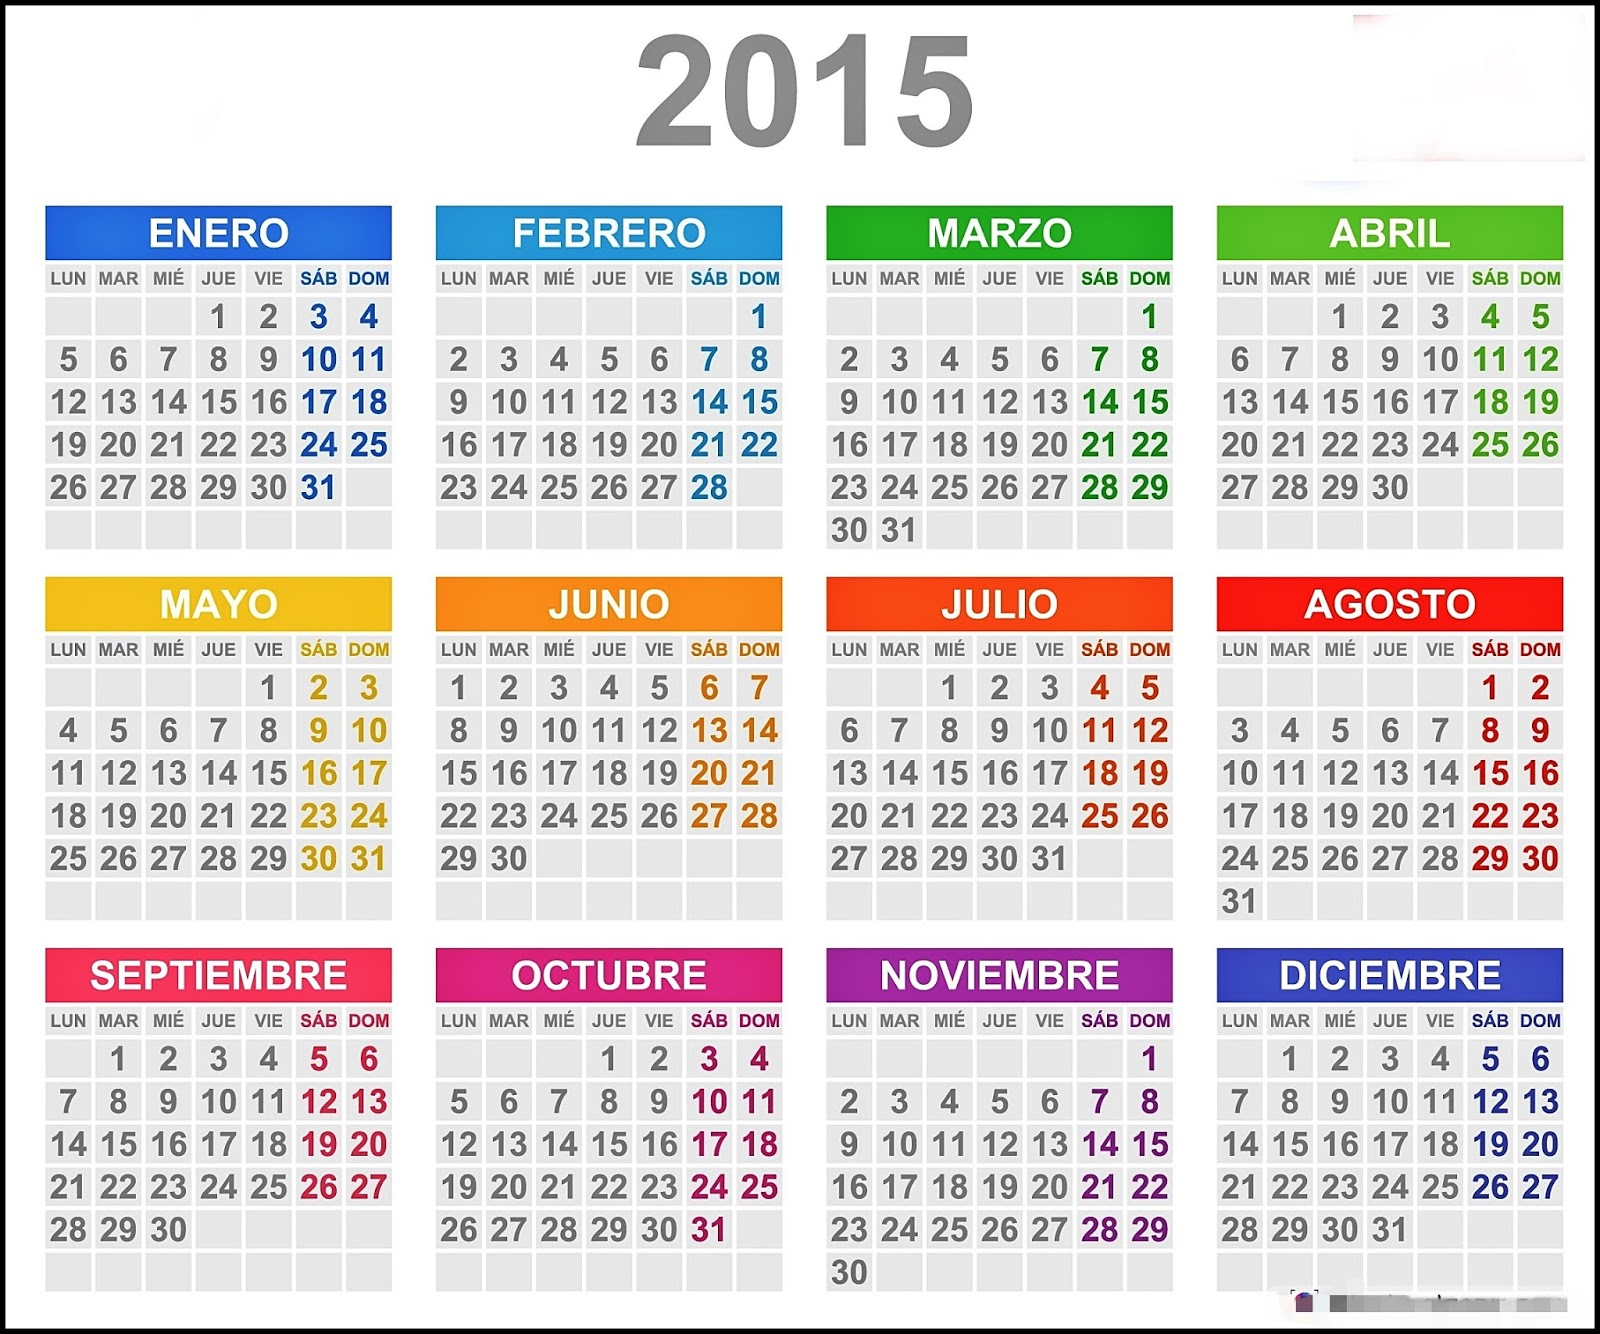 calendario anual 2015 - Etame.mibawa.co